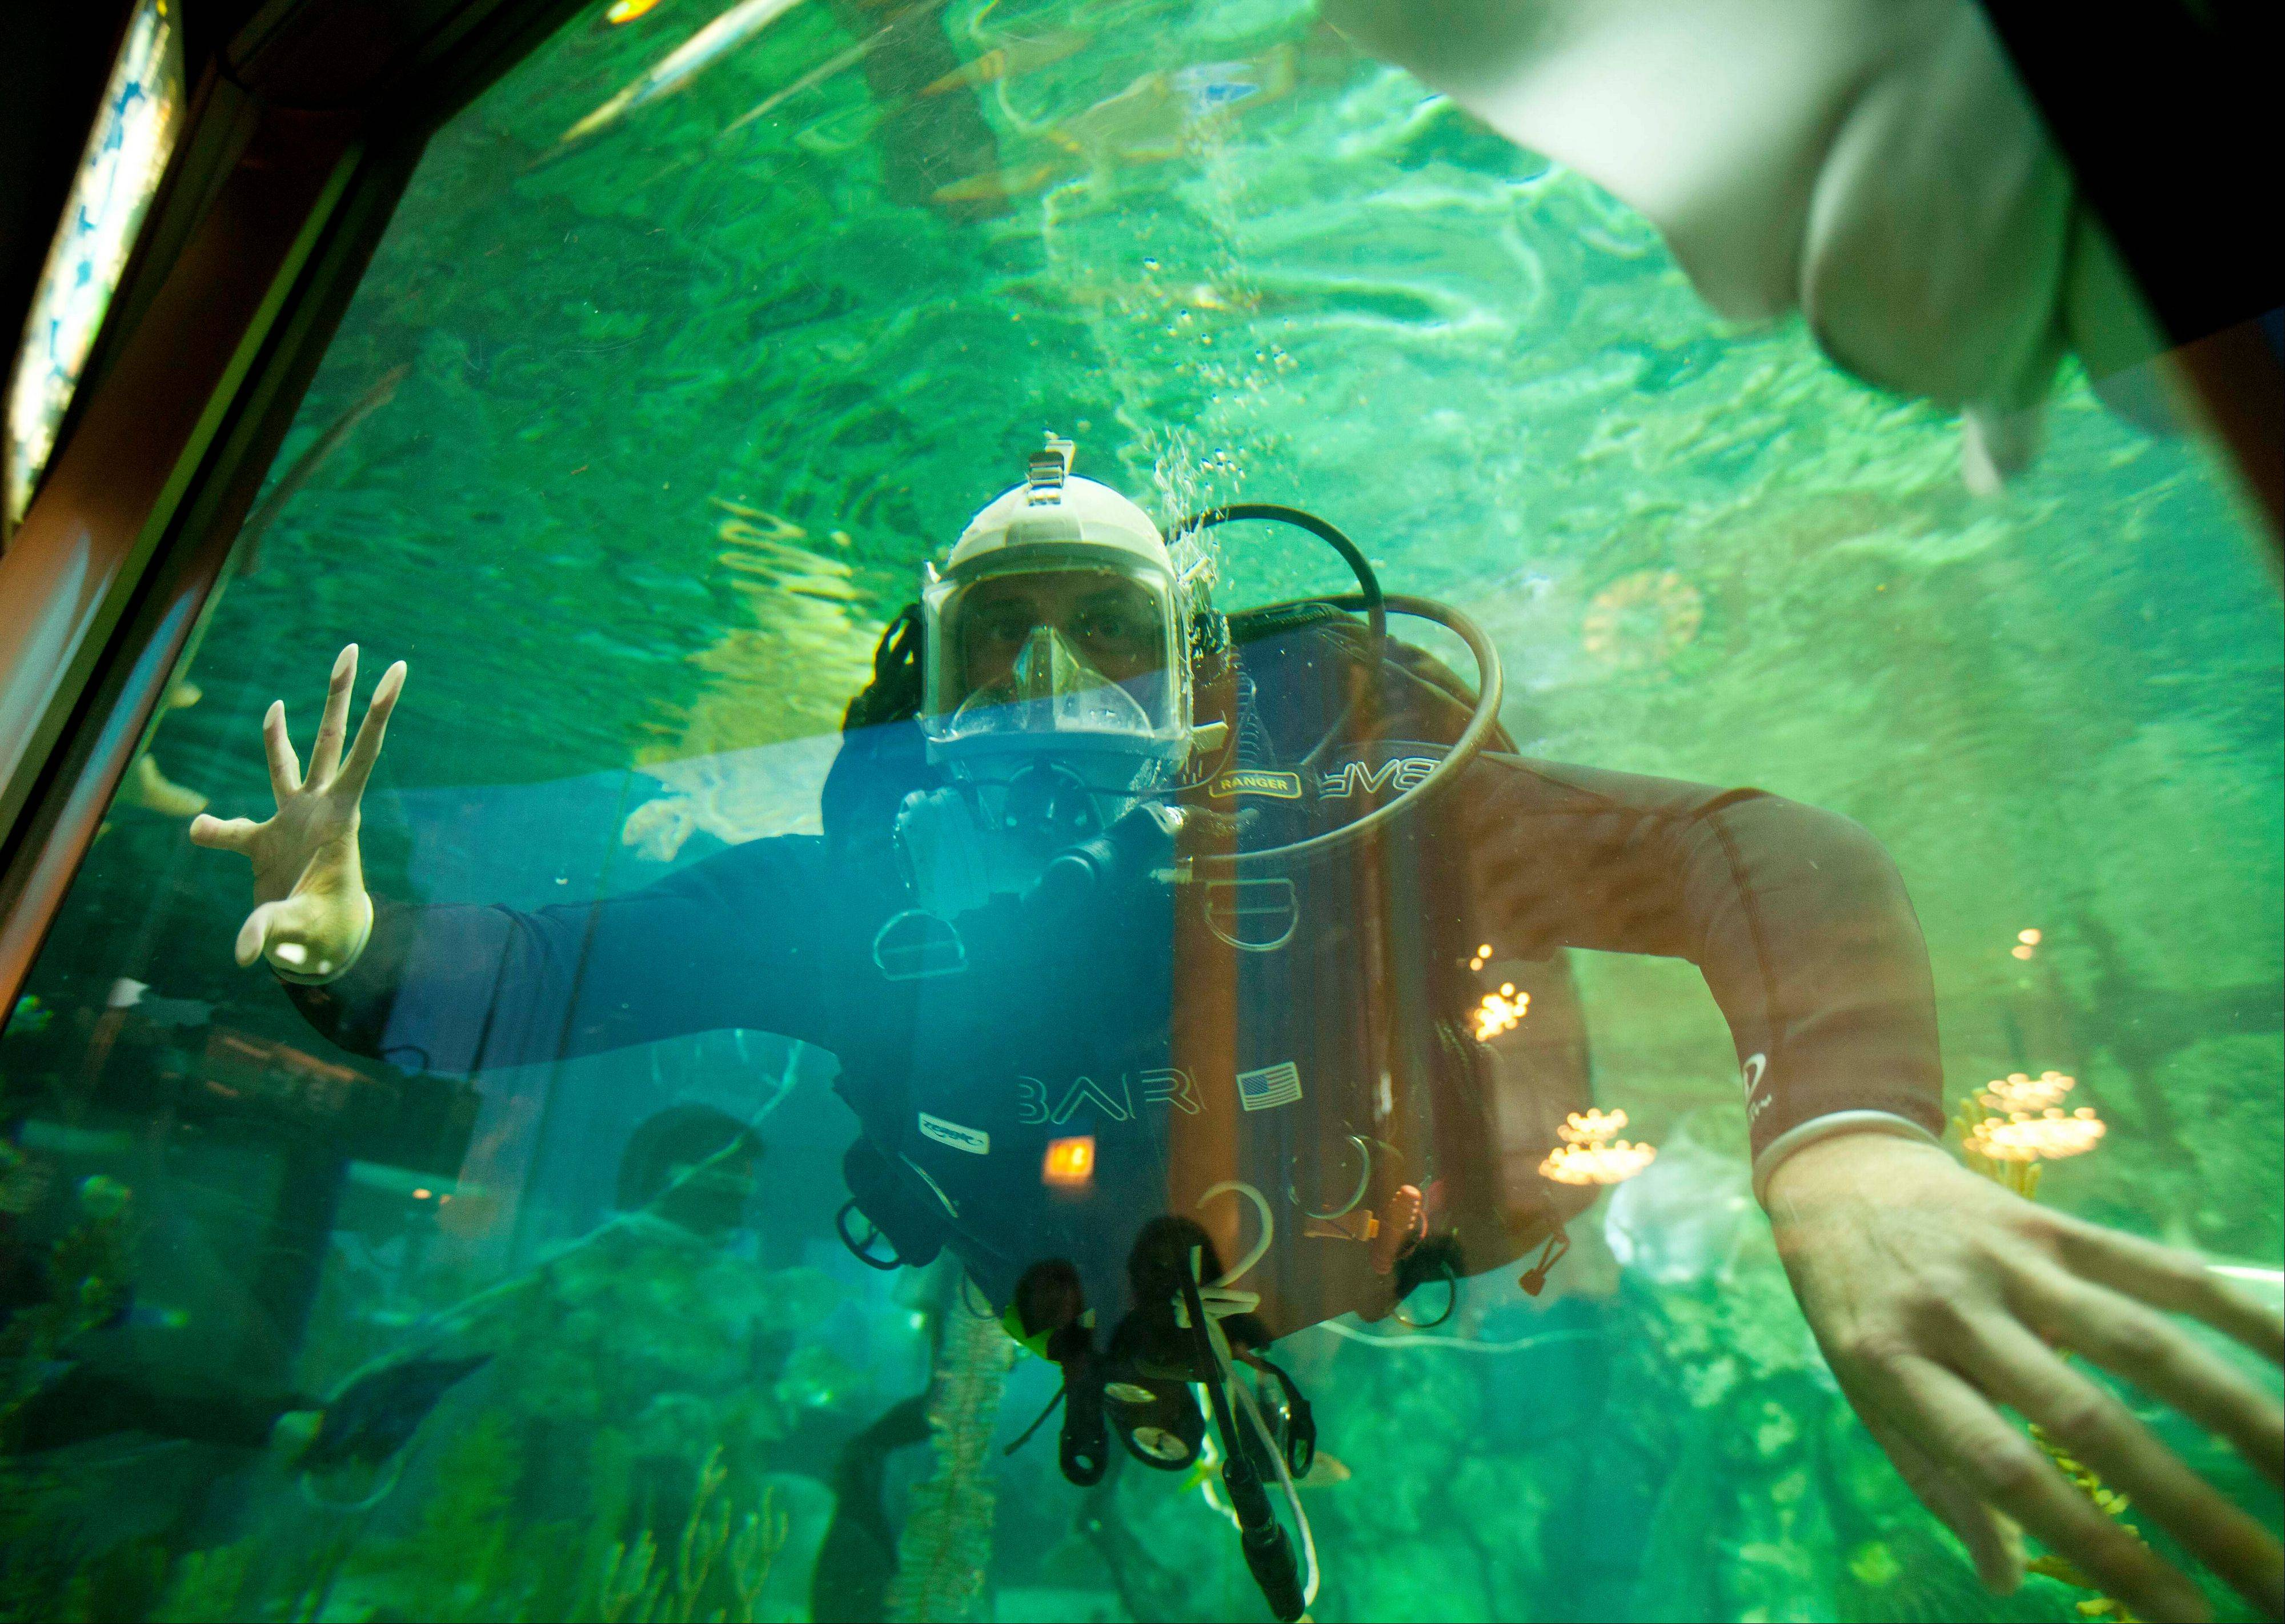 A member of the Navy Experimental Diving Unit swims in the Shedd Aquarium's Caribbean Reef exhibit on Thursday in Chicago.